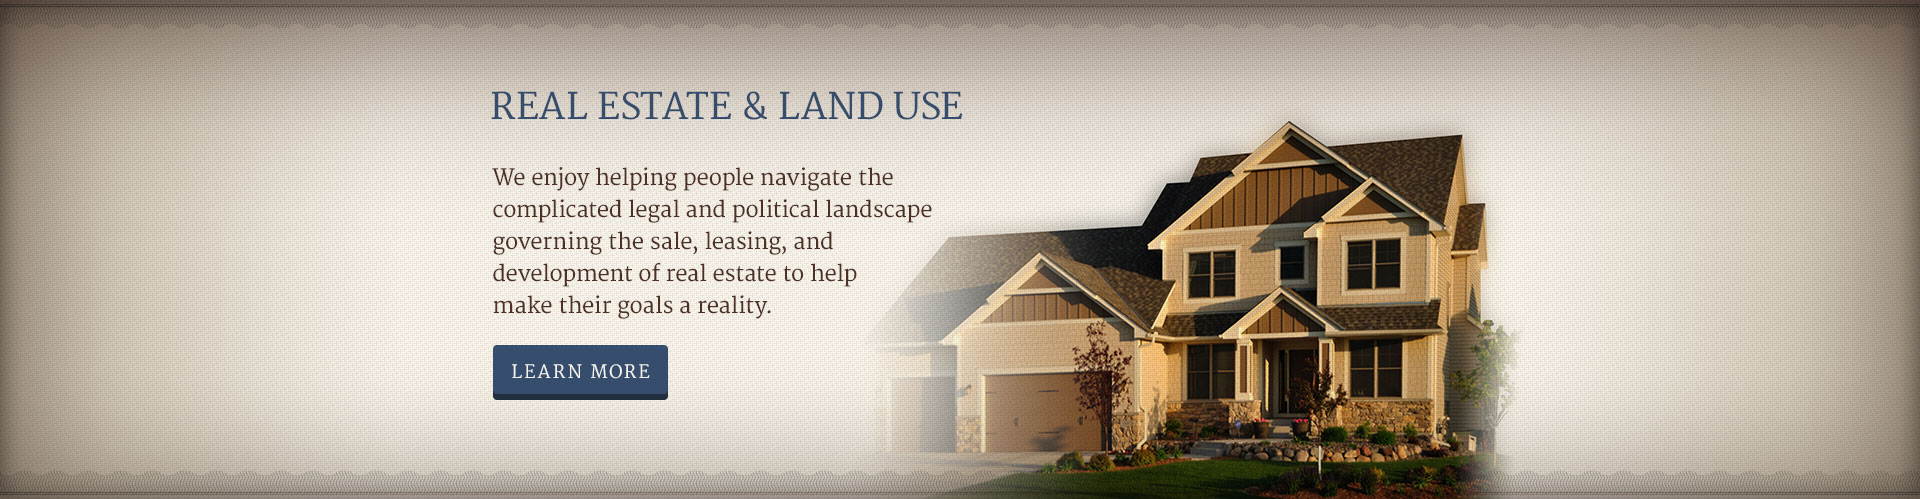 banner-real-estate-and-land-use